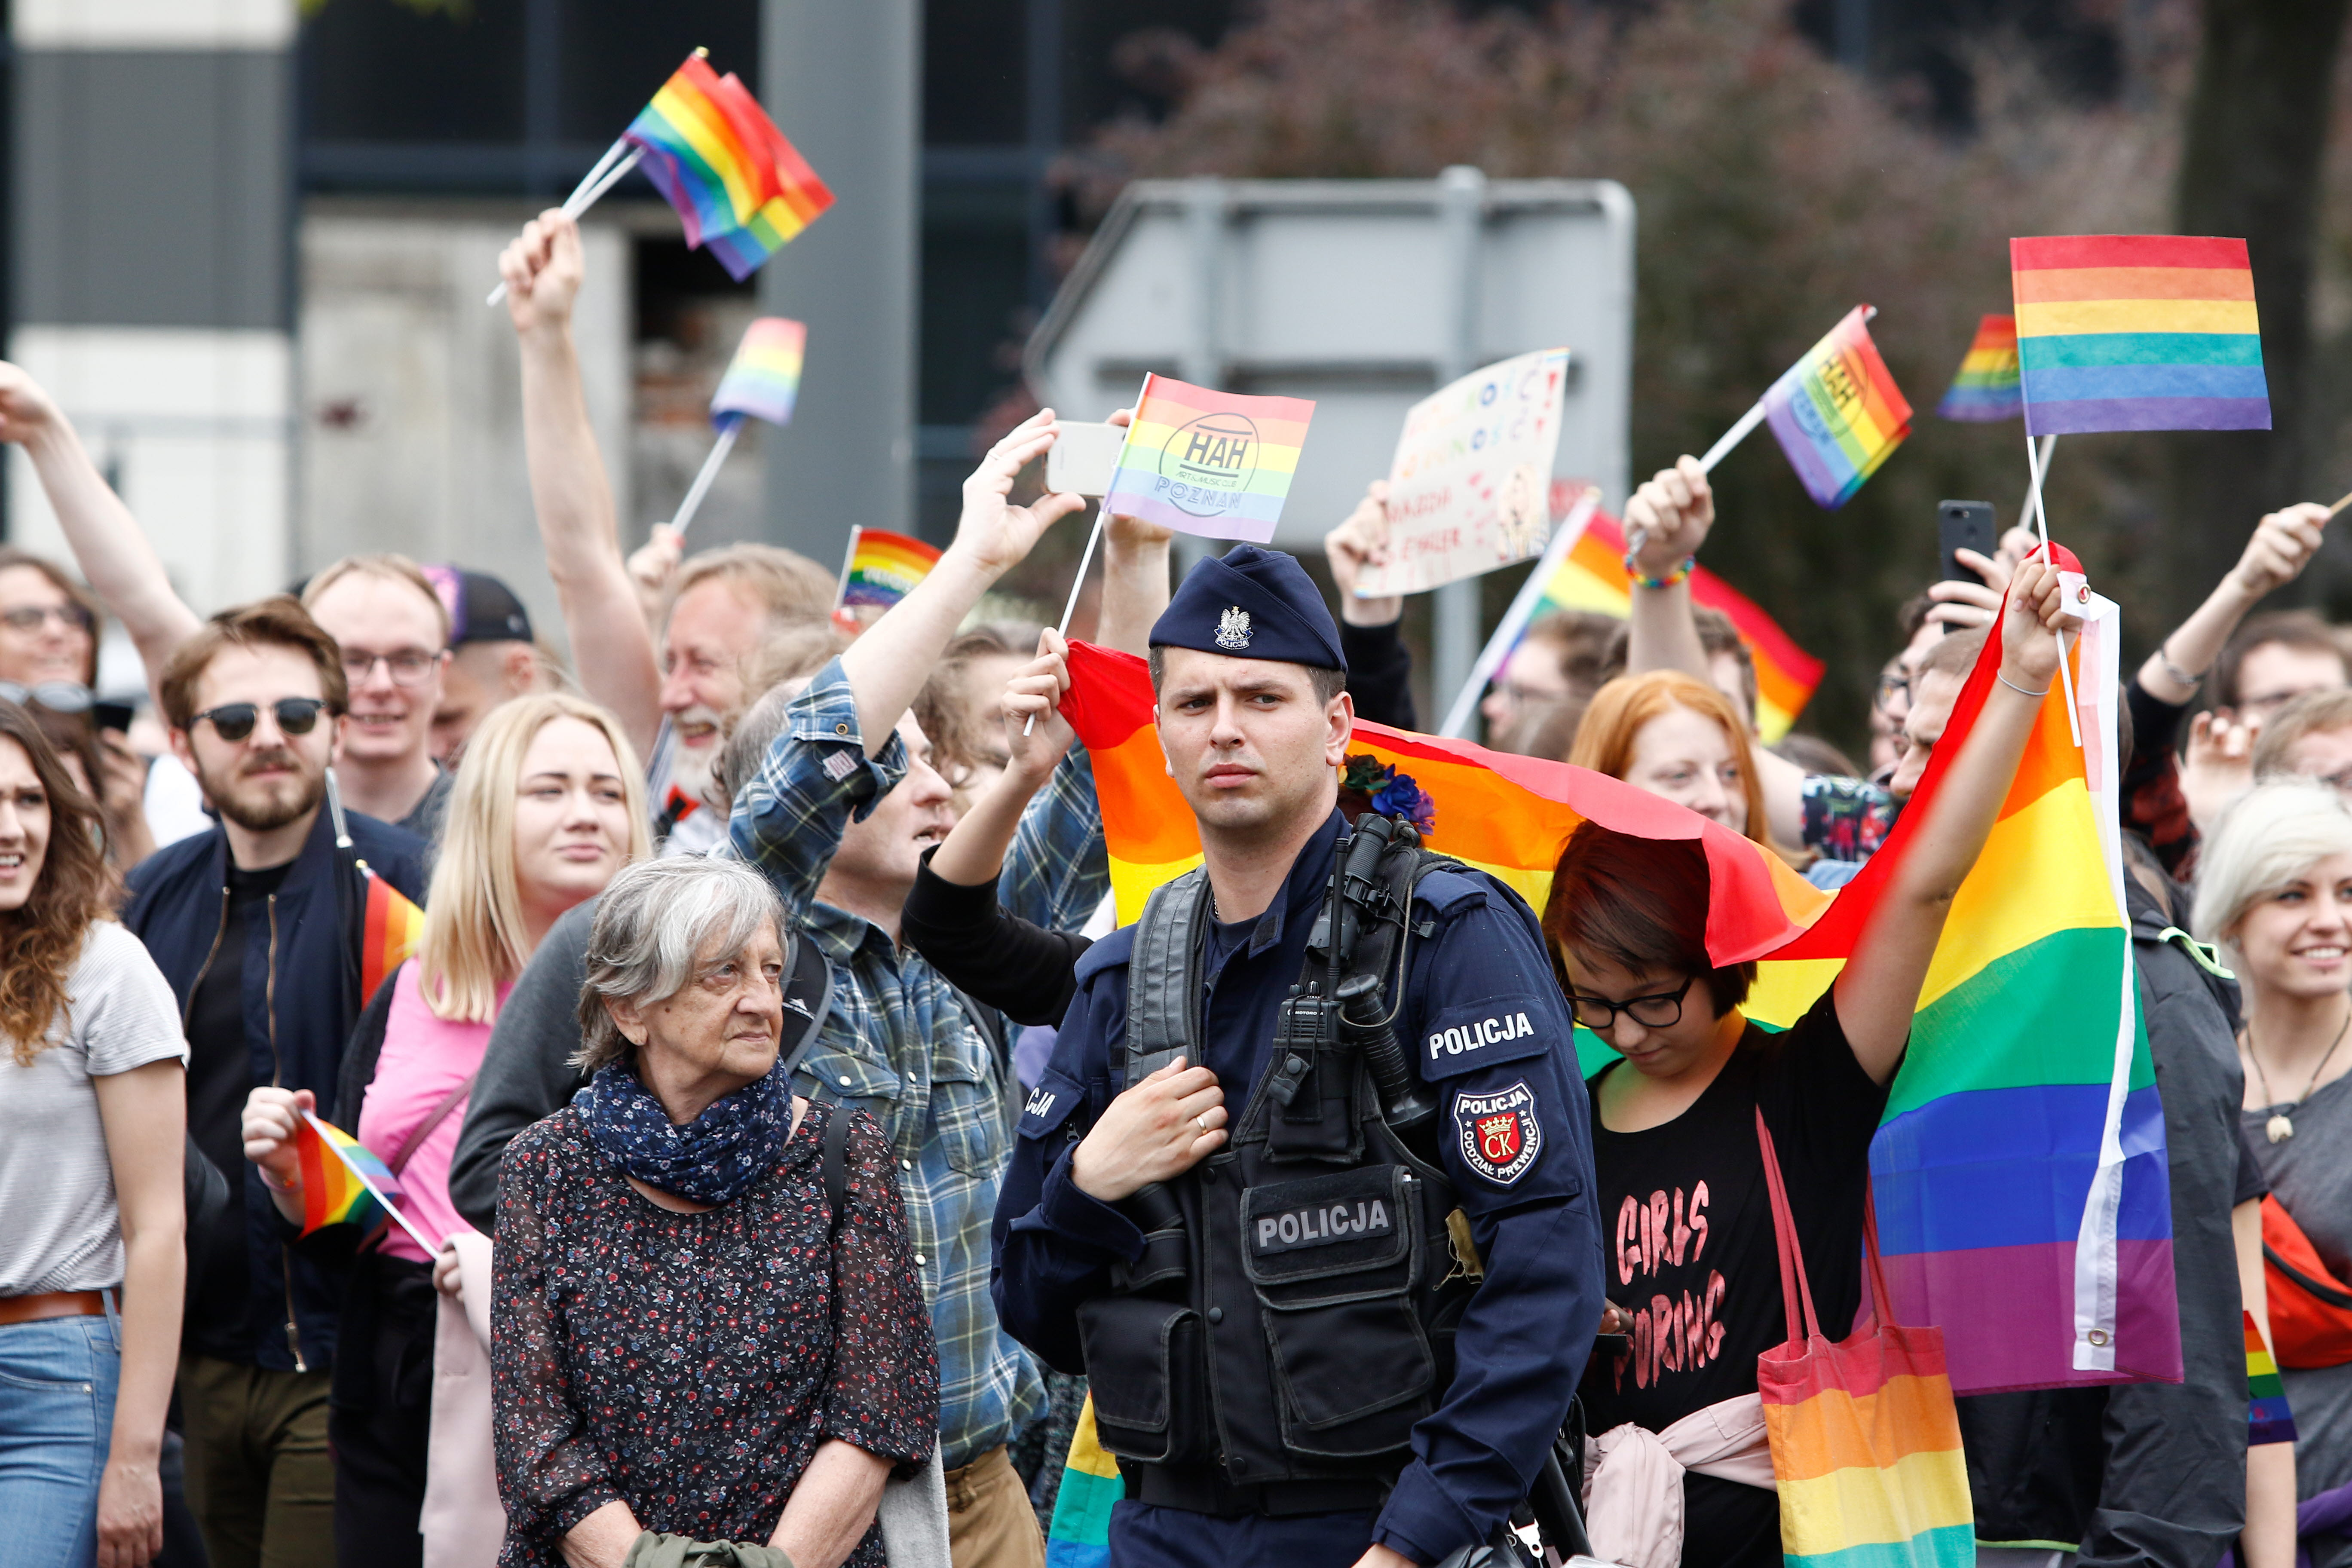 Call for the rights of LGBTI people in Polish municipalities